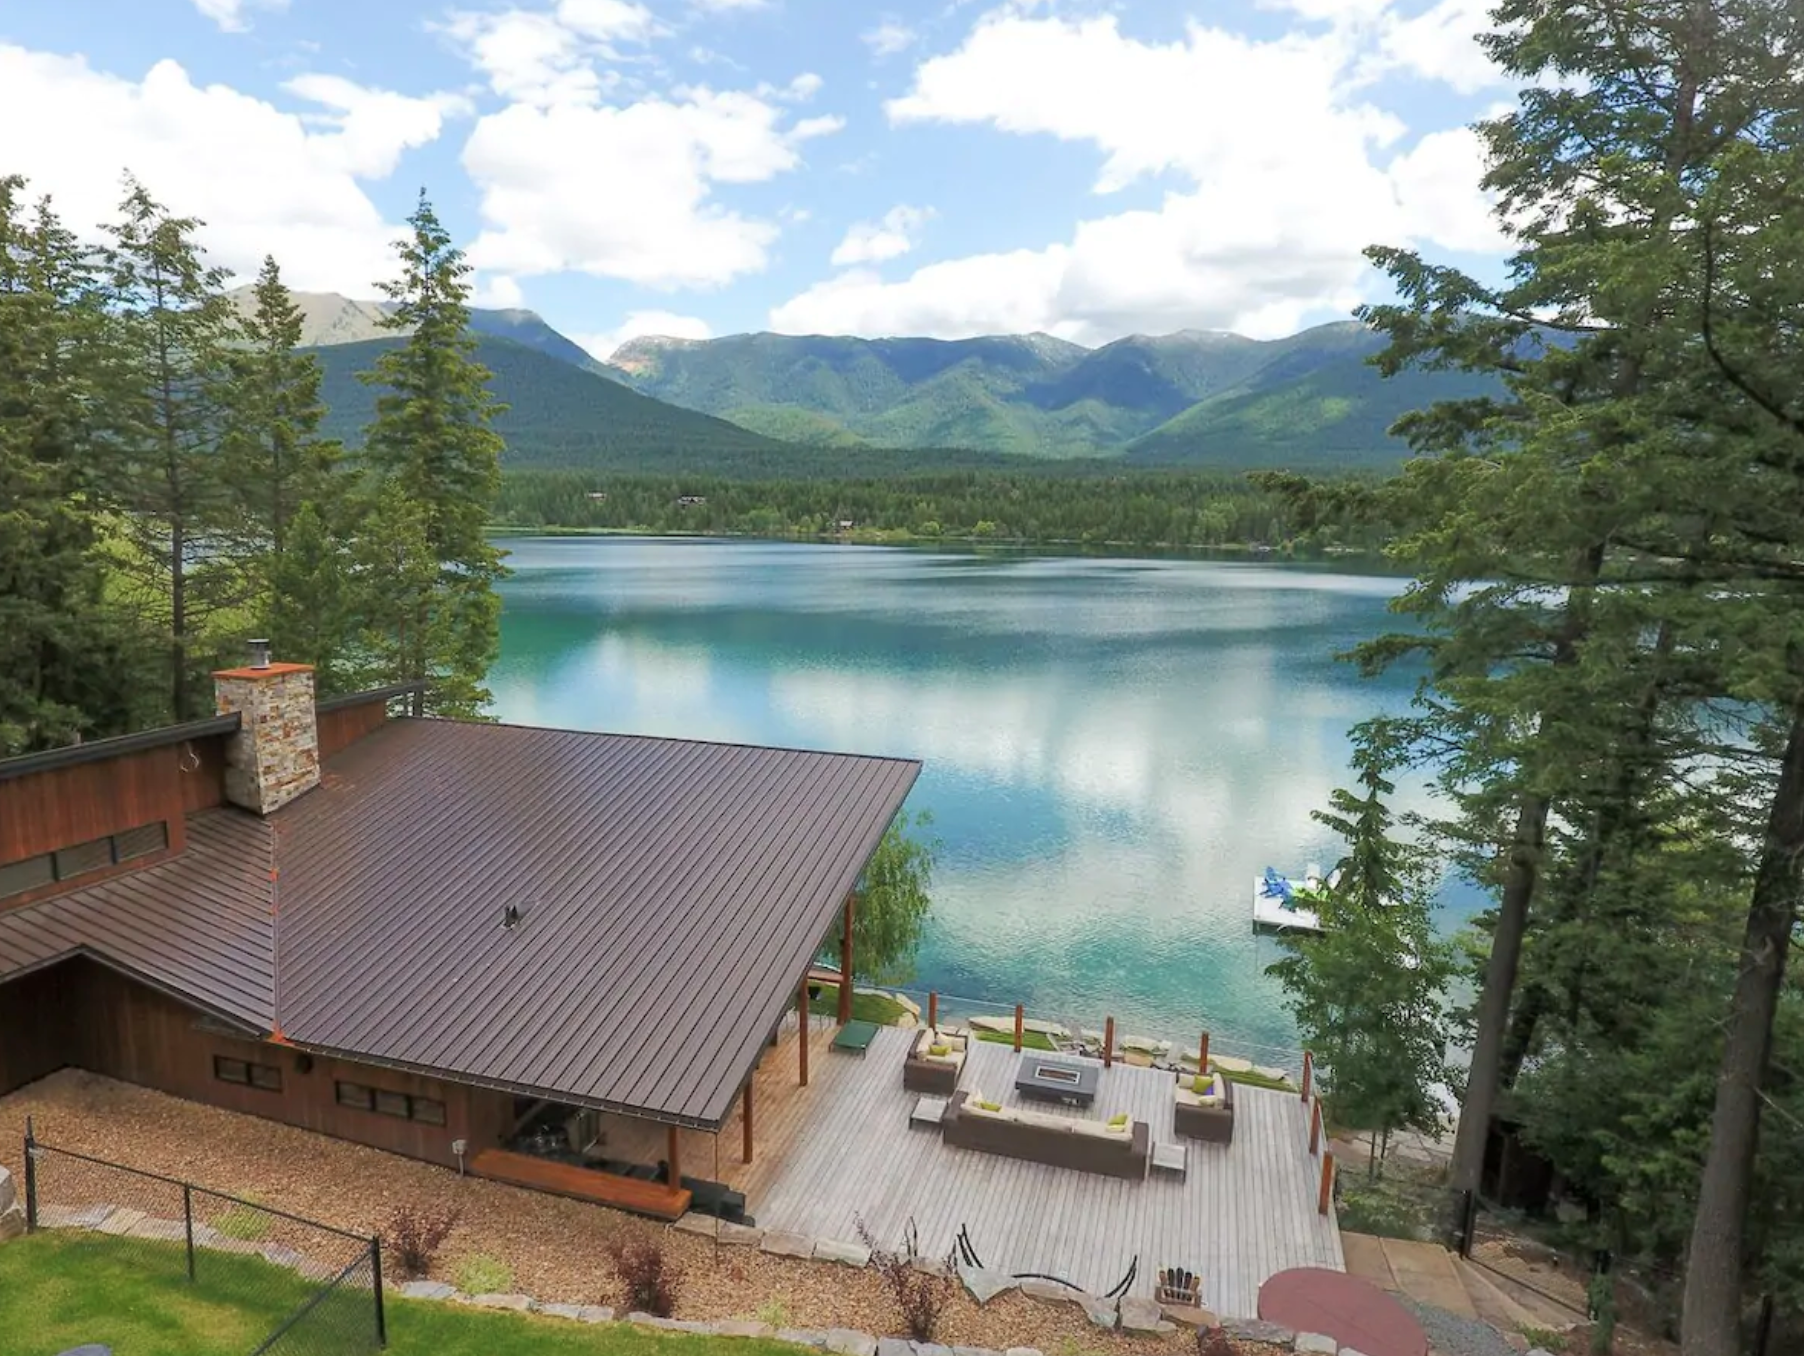 Forget The Resorts, Rent This Charming Waterfront Chalet In Montana Instead